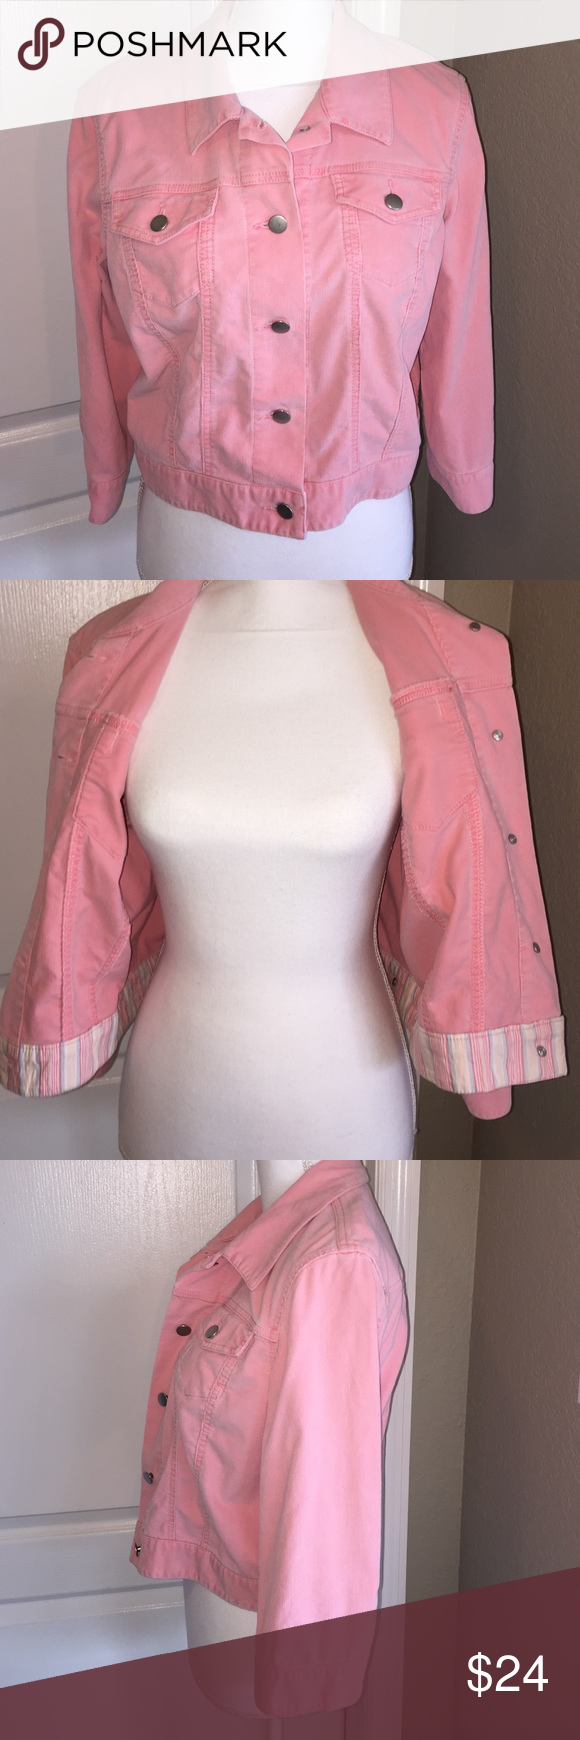 Moda International Stretch Cordoury Style Jacket Moda International Stretch Cordoury Style Jacket.  Size 12, Pink. 98% Cotton, 2% Spandex.  Waist length, 3/4 Sleeves.  19 inches long from shoulder to hem. Moda International Jackets & Coats